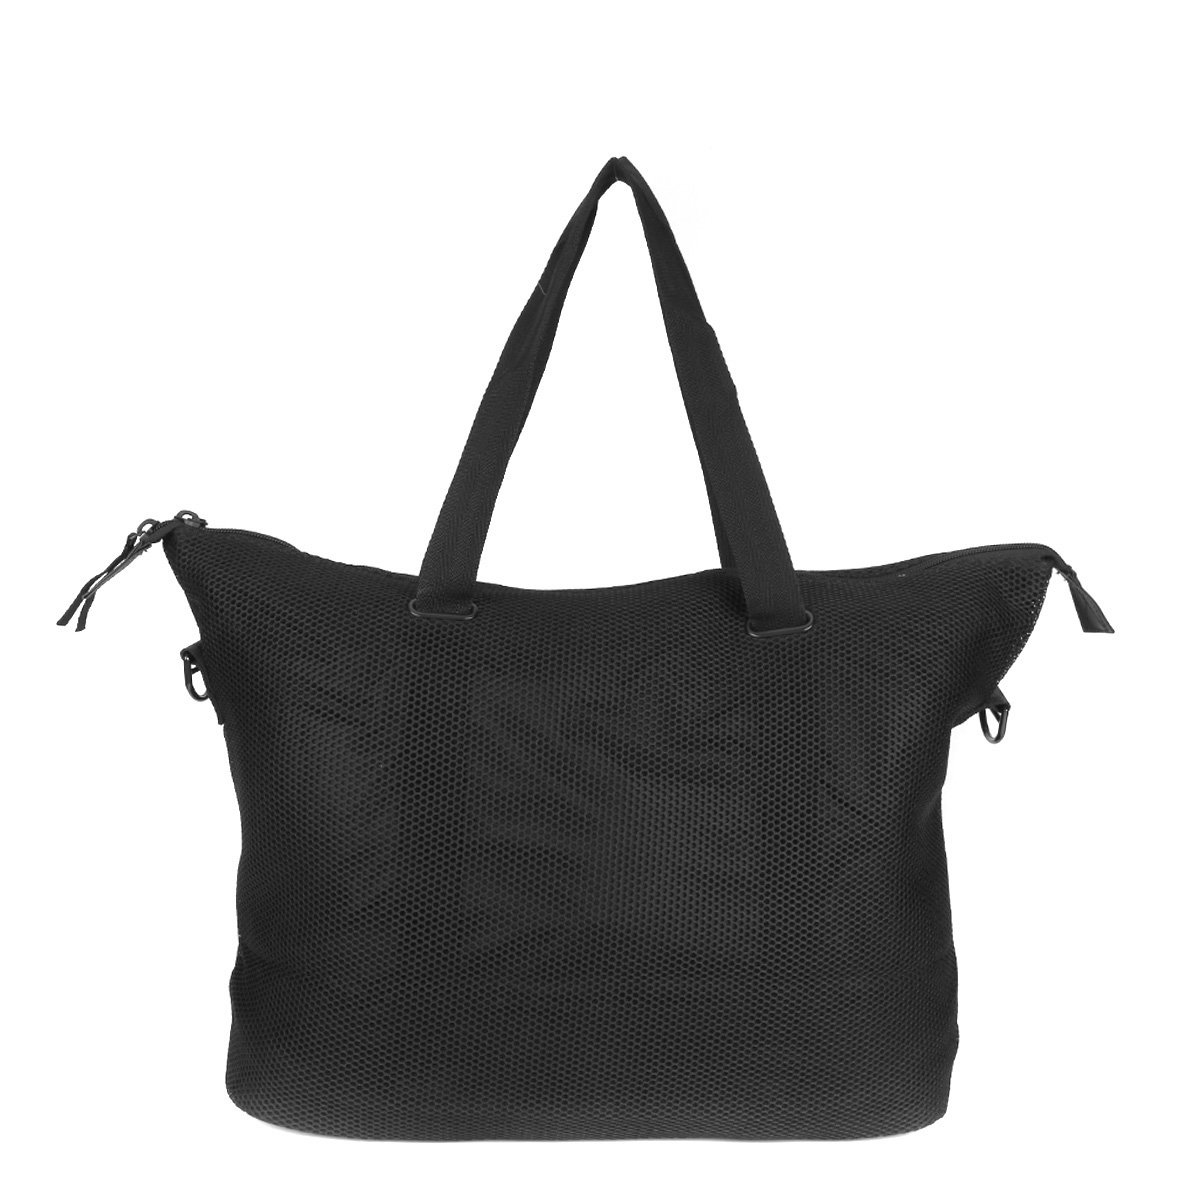 4d2421a8bbb Bolsa Under Armour On The Run Tote Feminina - Compre Agora